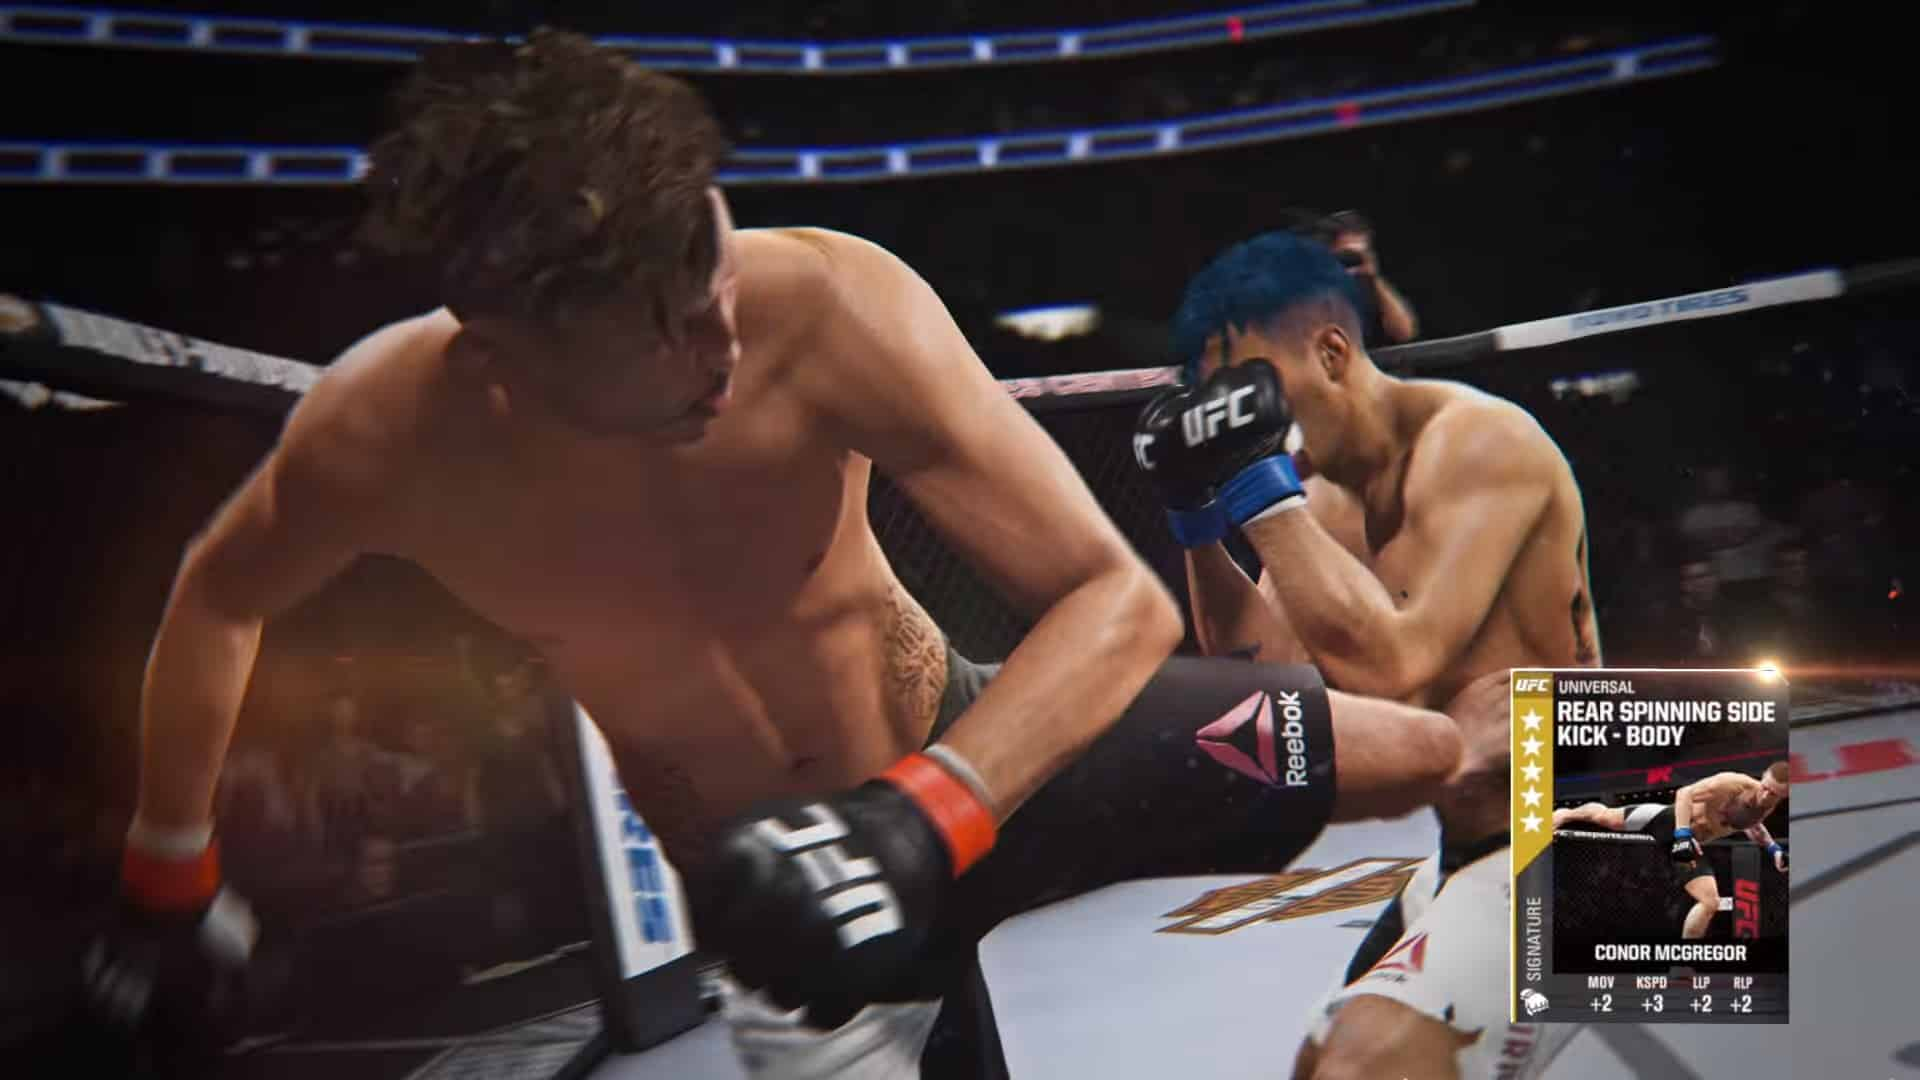 ufc 2 ultimate team moves spin kick